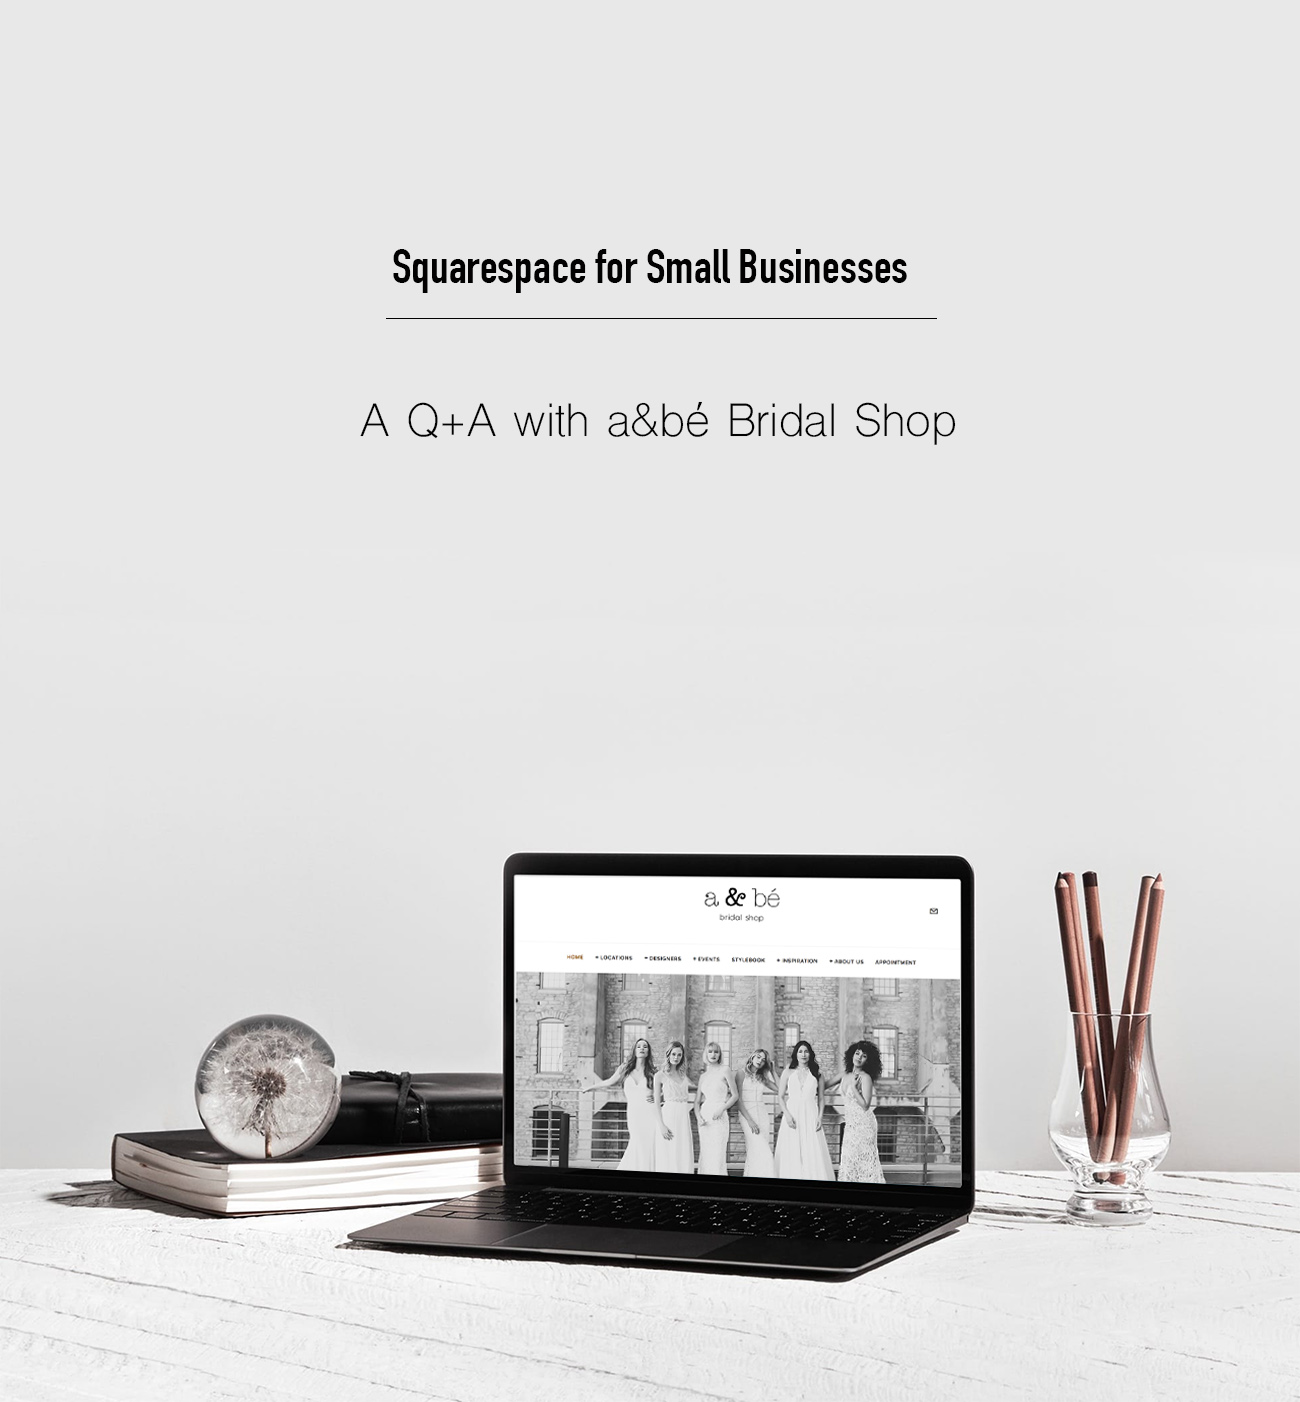 Squarespace for Small Business: A Q+A with a&bé Bridal Shop